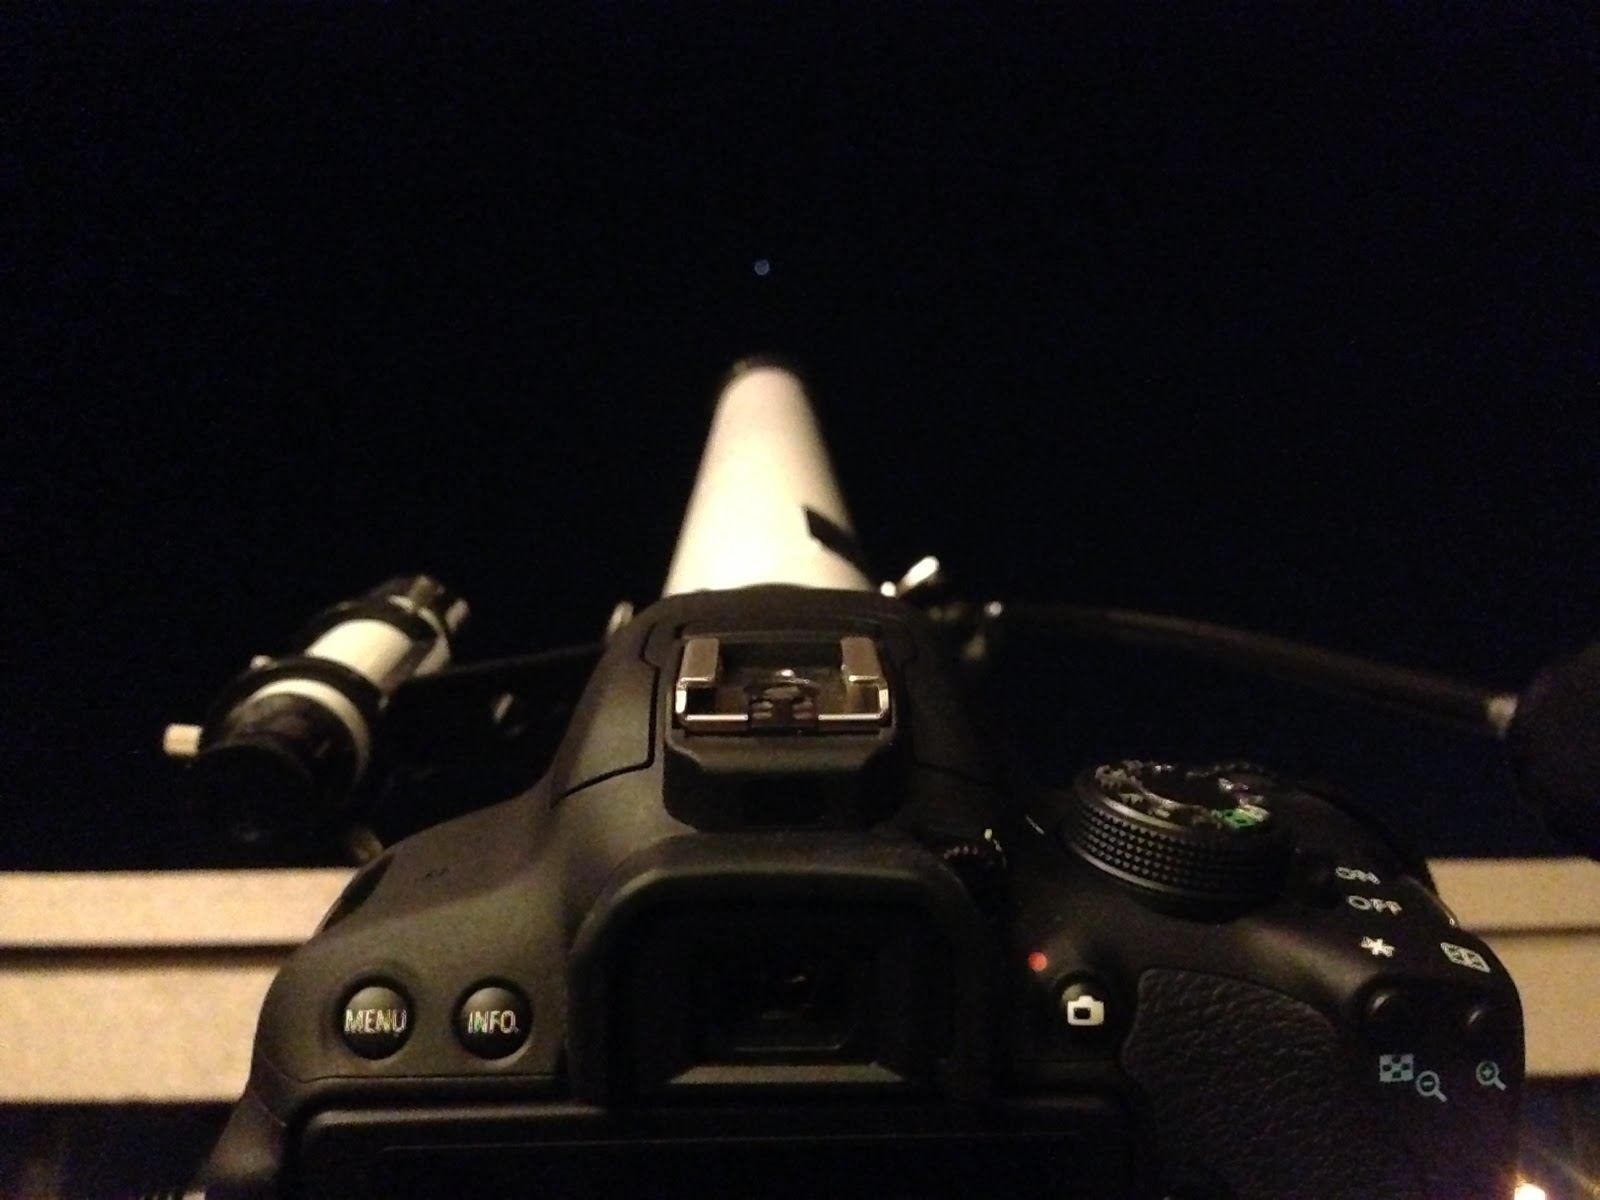 DSLR attached to telescope